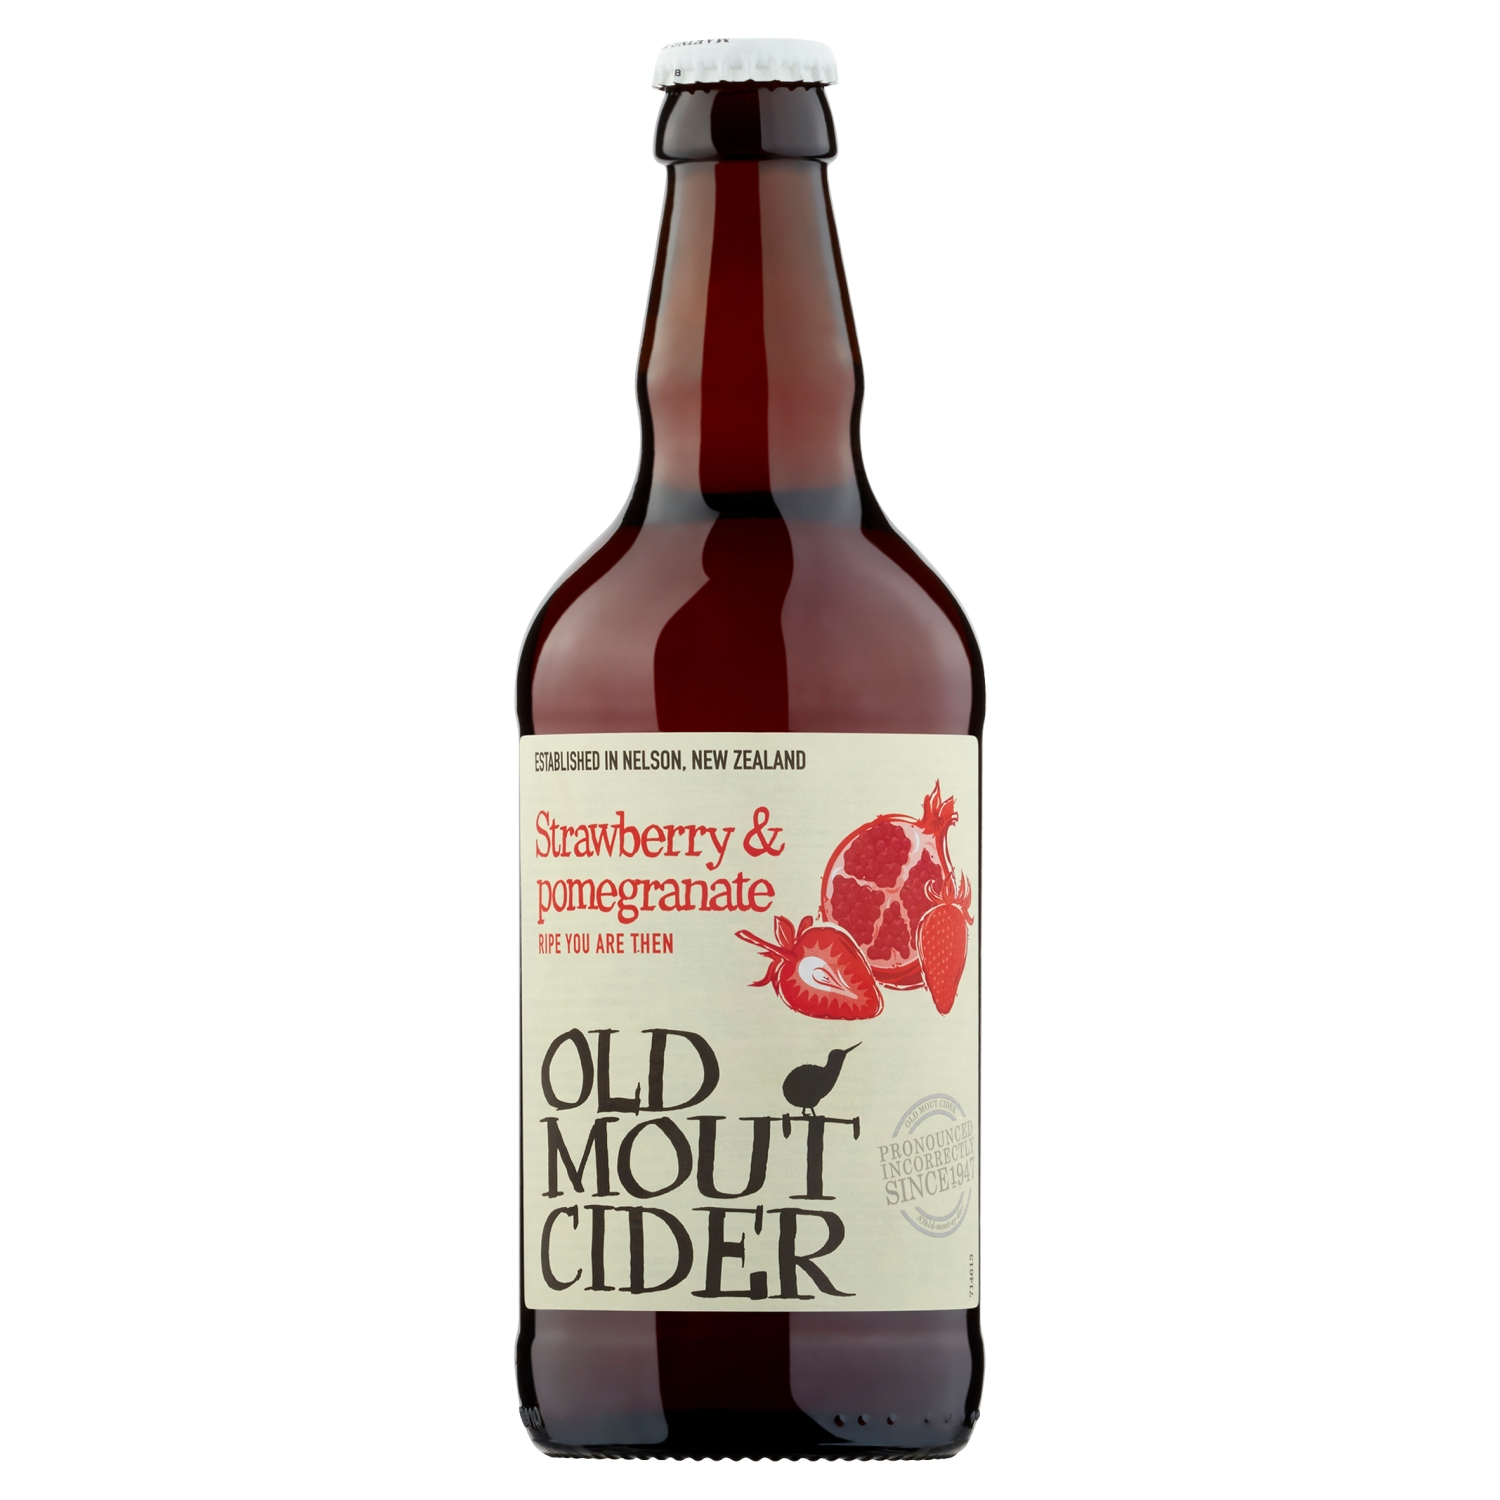 Old Mout Cider Strawberry & Pomegranate 500ml